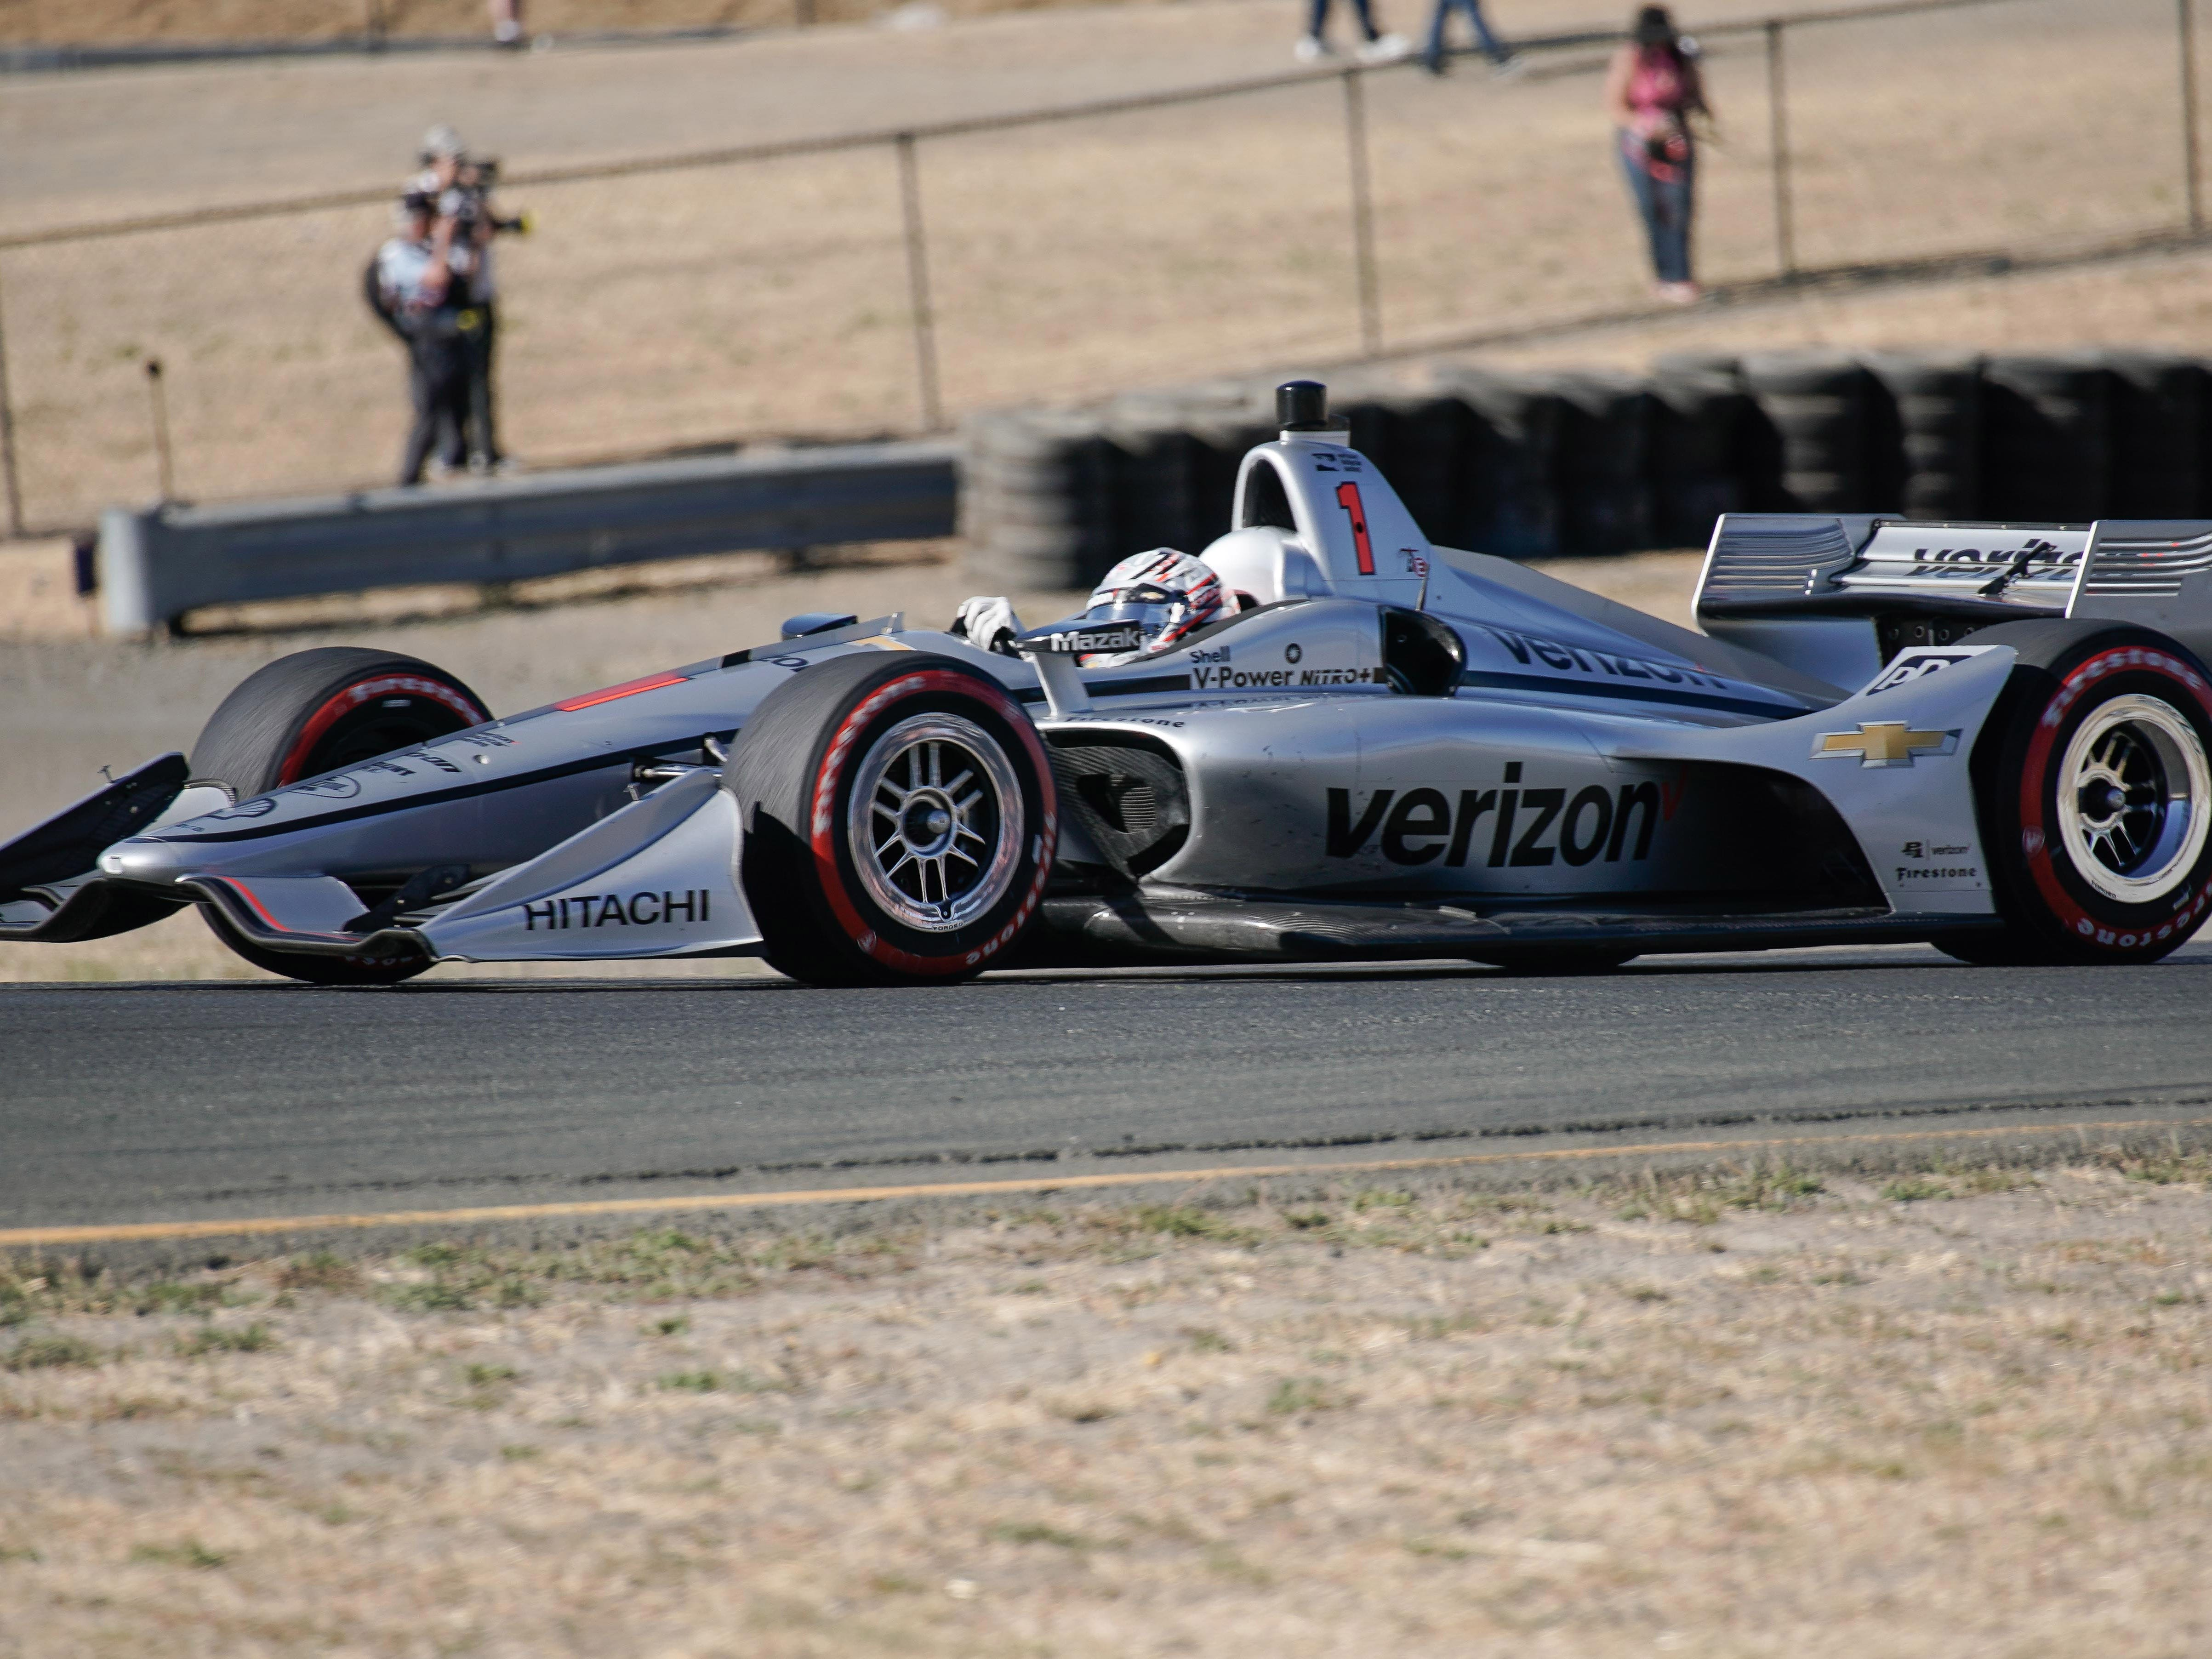 Sep 16, 2018; Sonoma, CA, USA;  Indycar driver Josef Newgarden (1) during the Grand Prix of Sonoma at Sonoma Raceway. Mandatory Credit: Stan Szeto-USA TODAY Sports